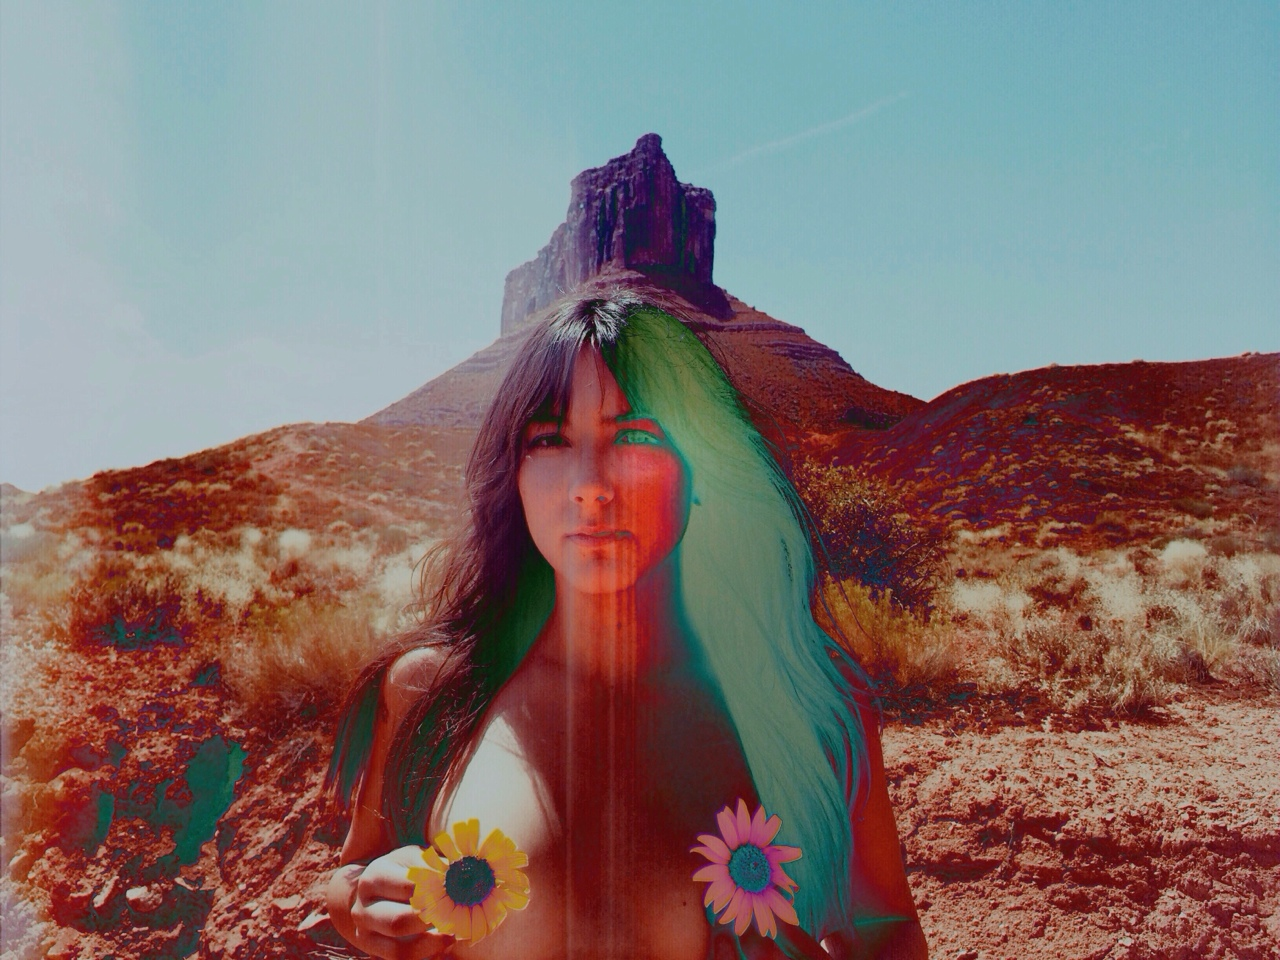 photography by Dana Trippe